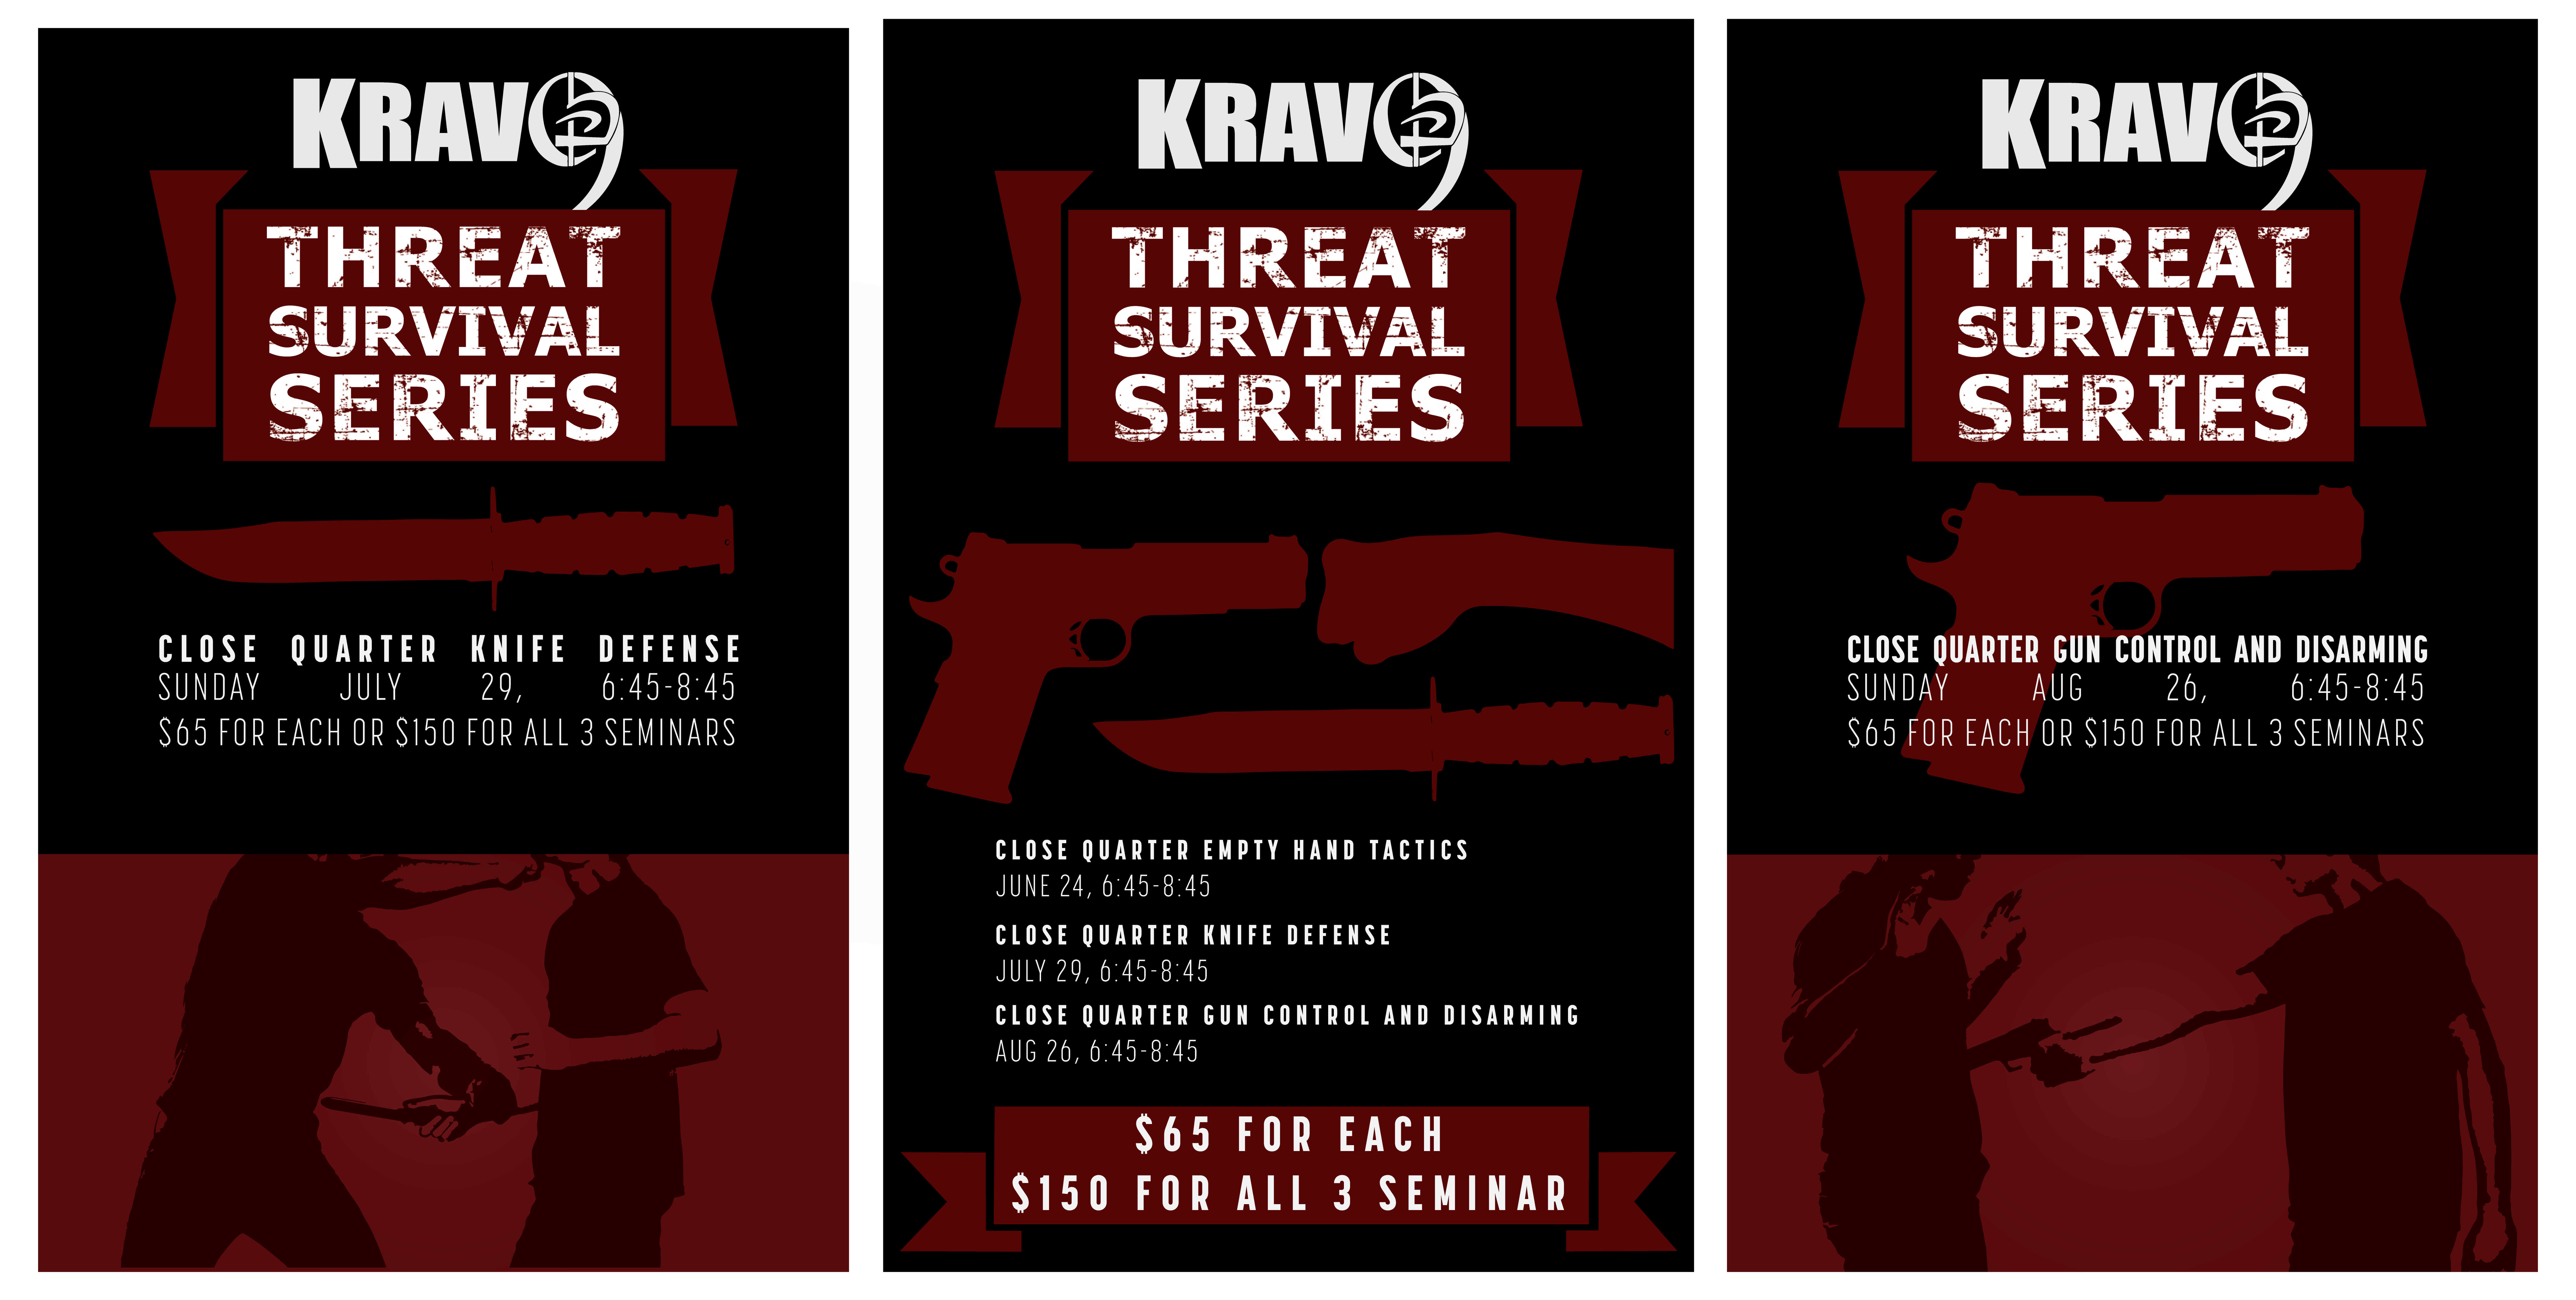 Krav survival series